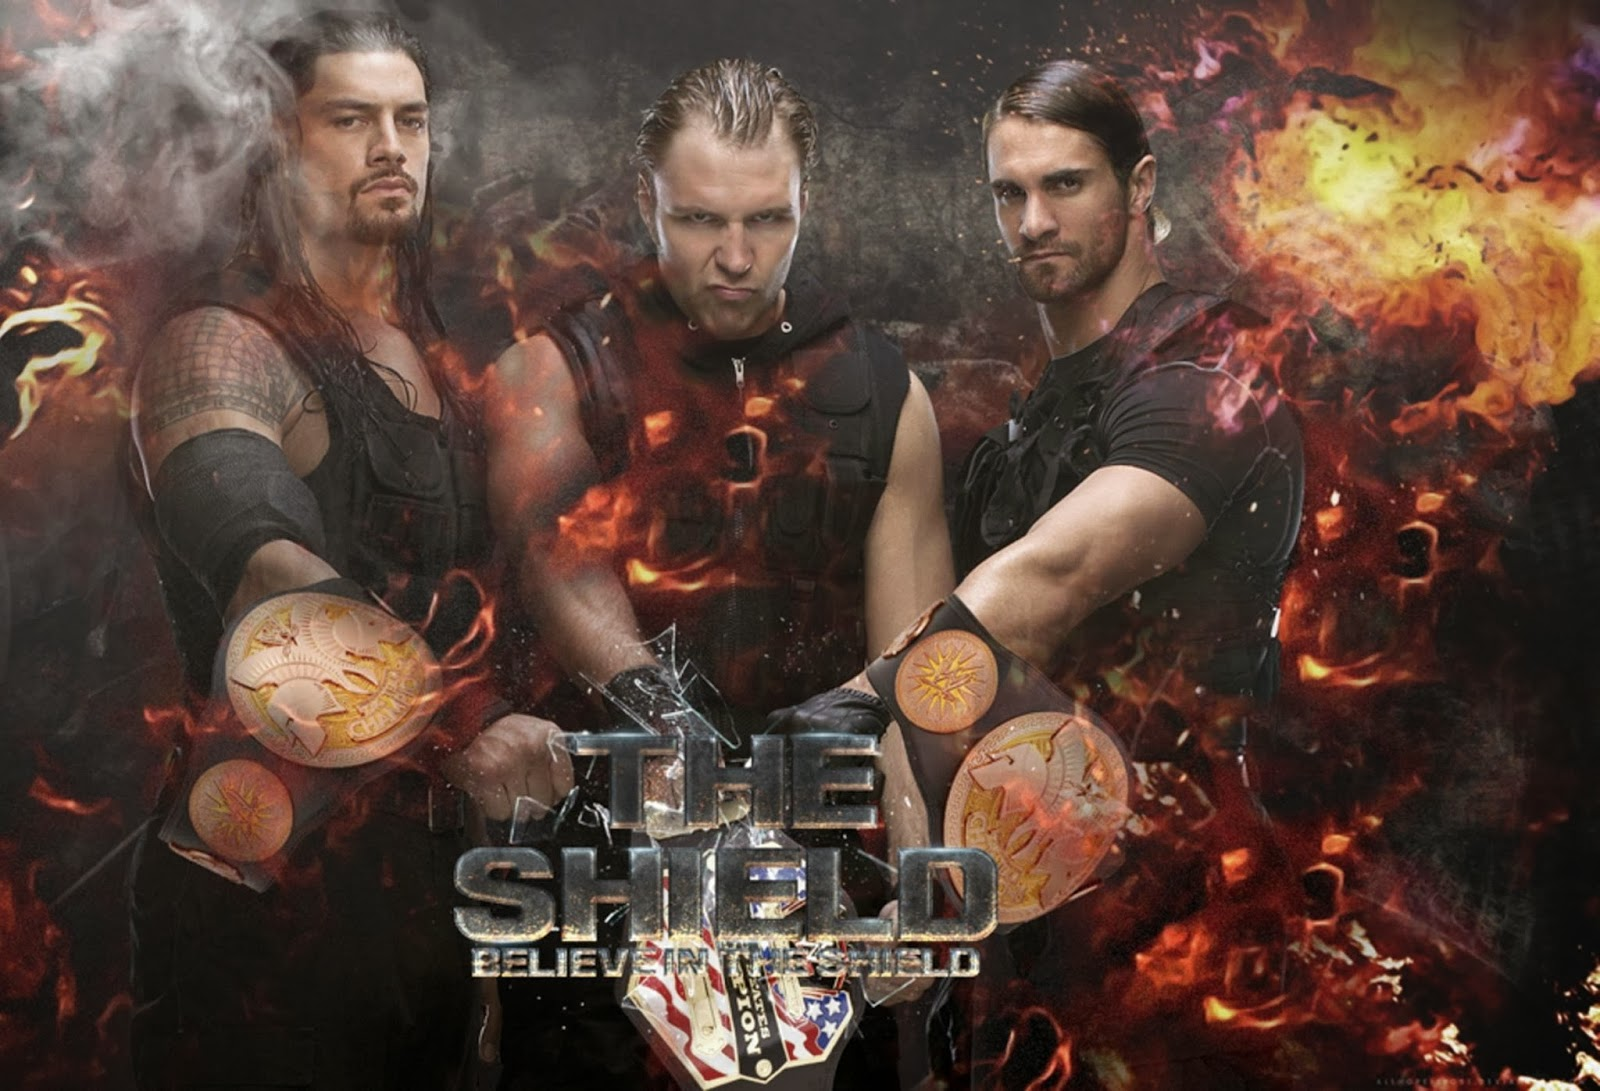 The shield hd wallpapers free download wwe hd wallpaper - Download pictures of the shield wwe ...